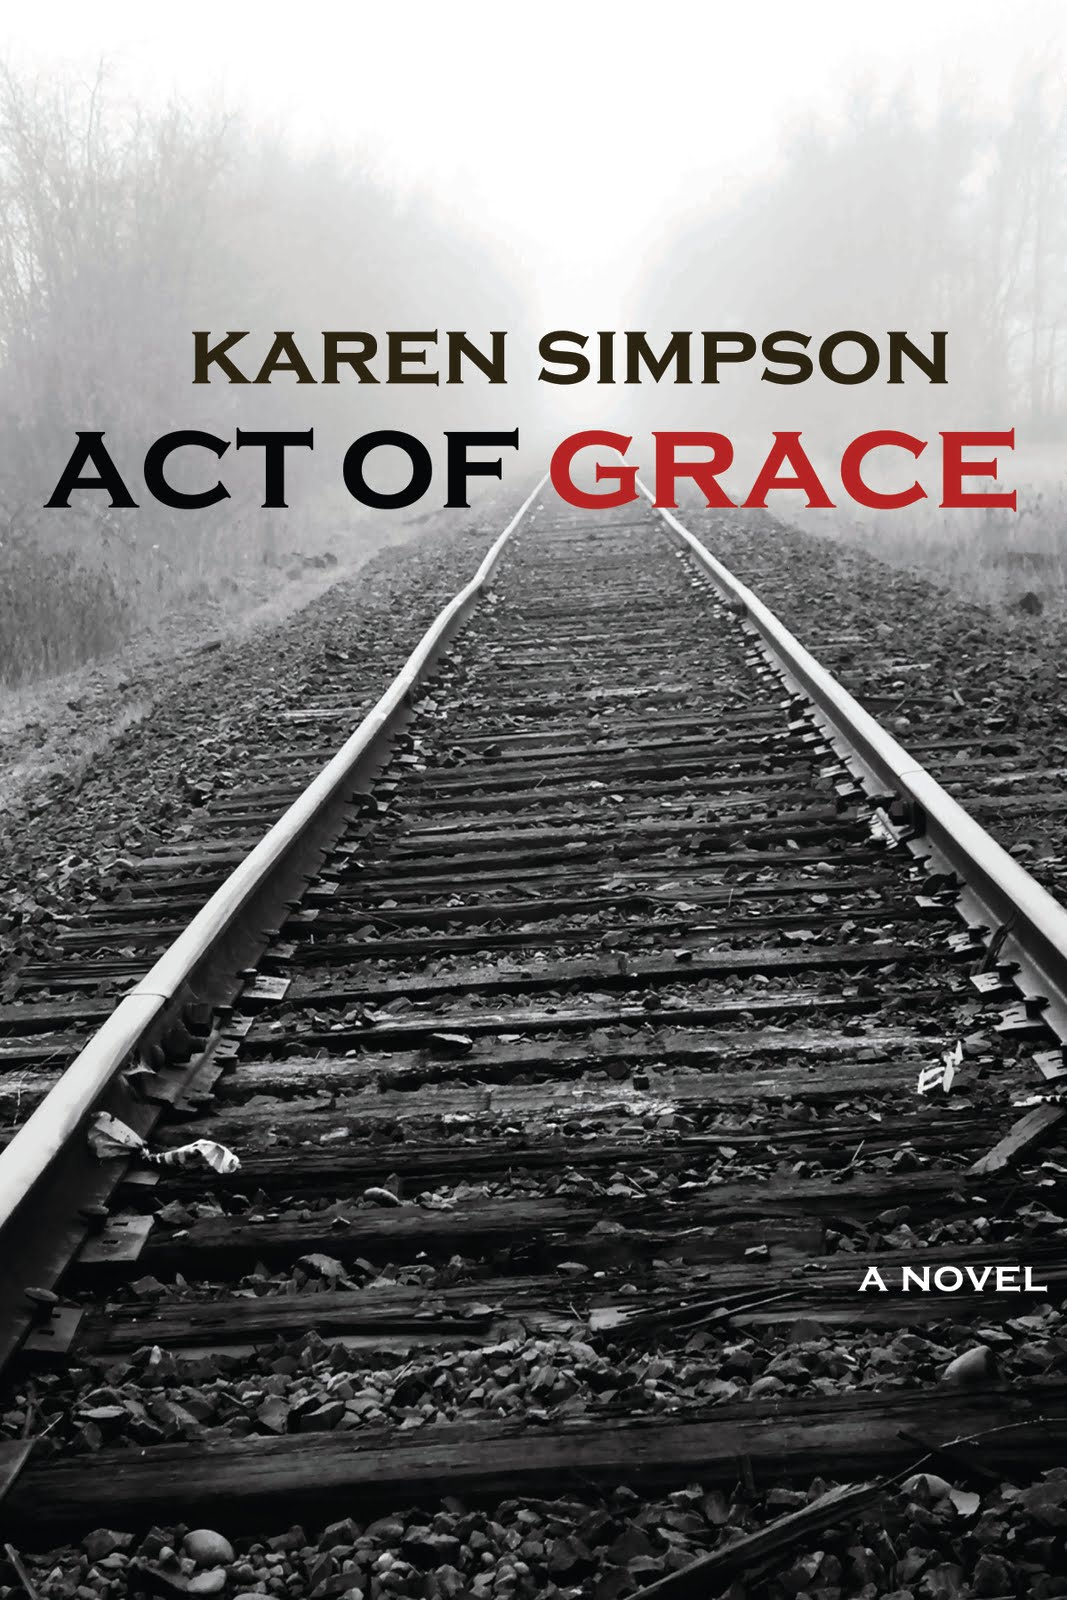 Act of Grace is available in softcover and ebook